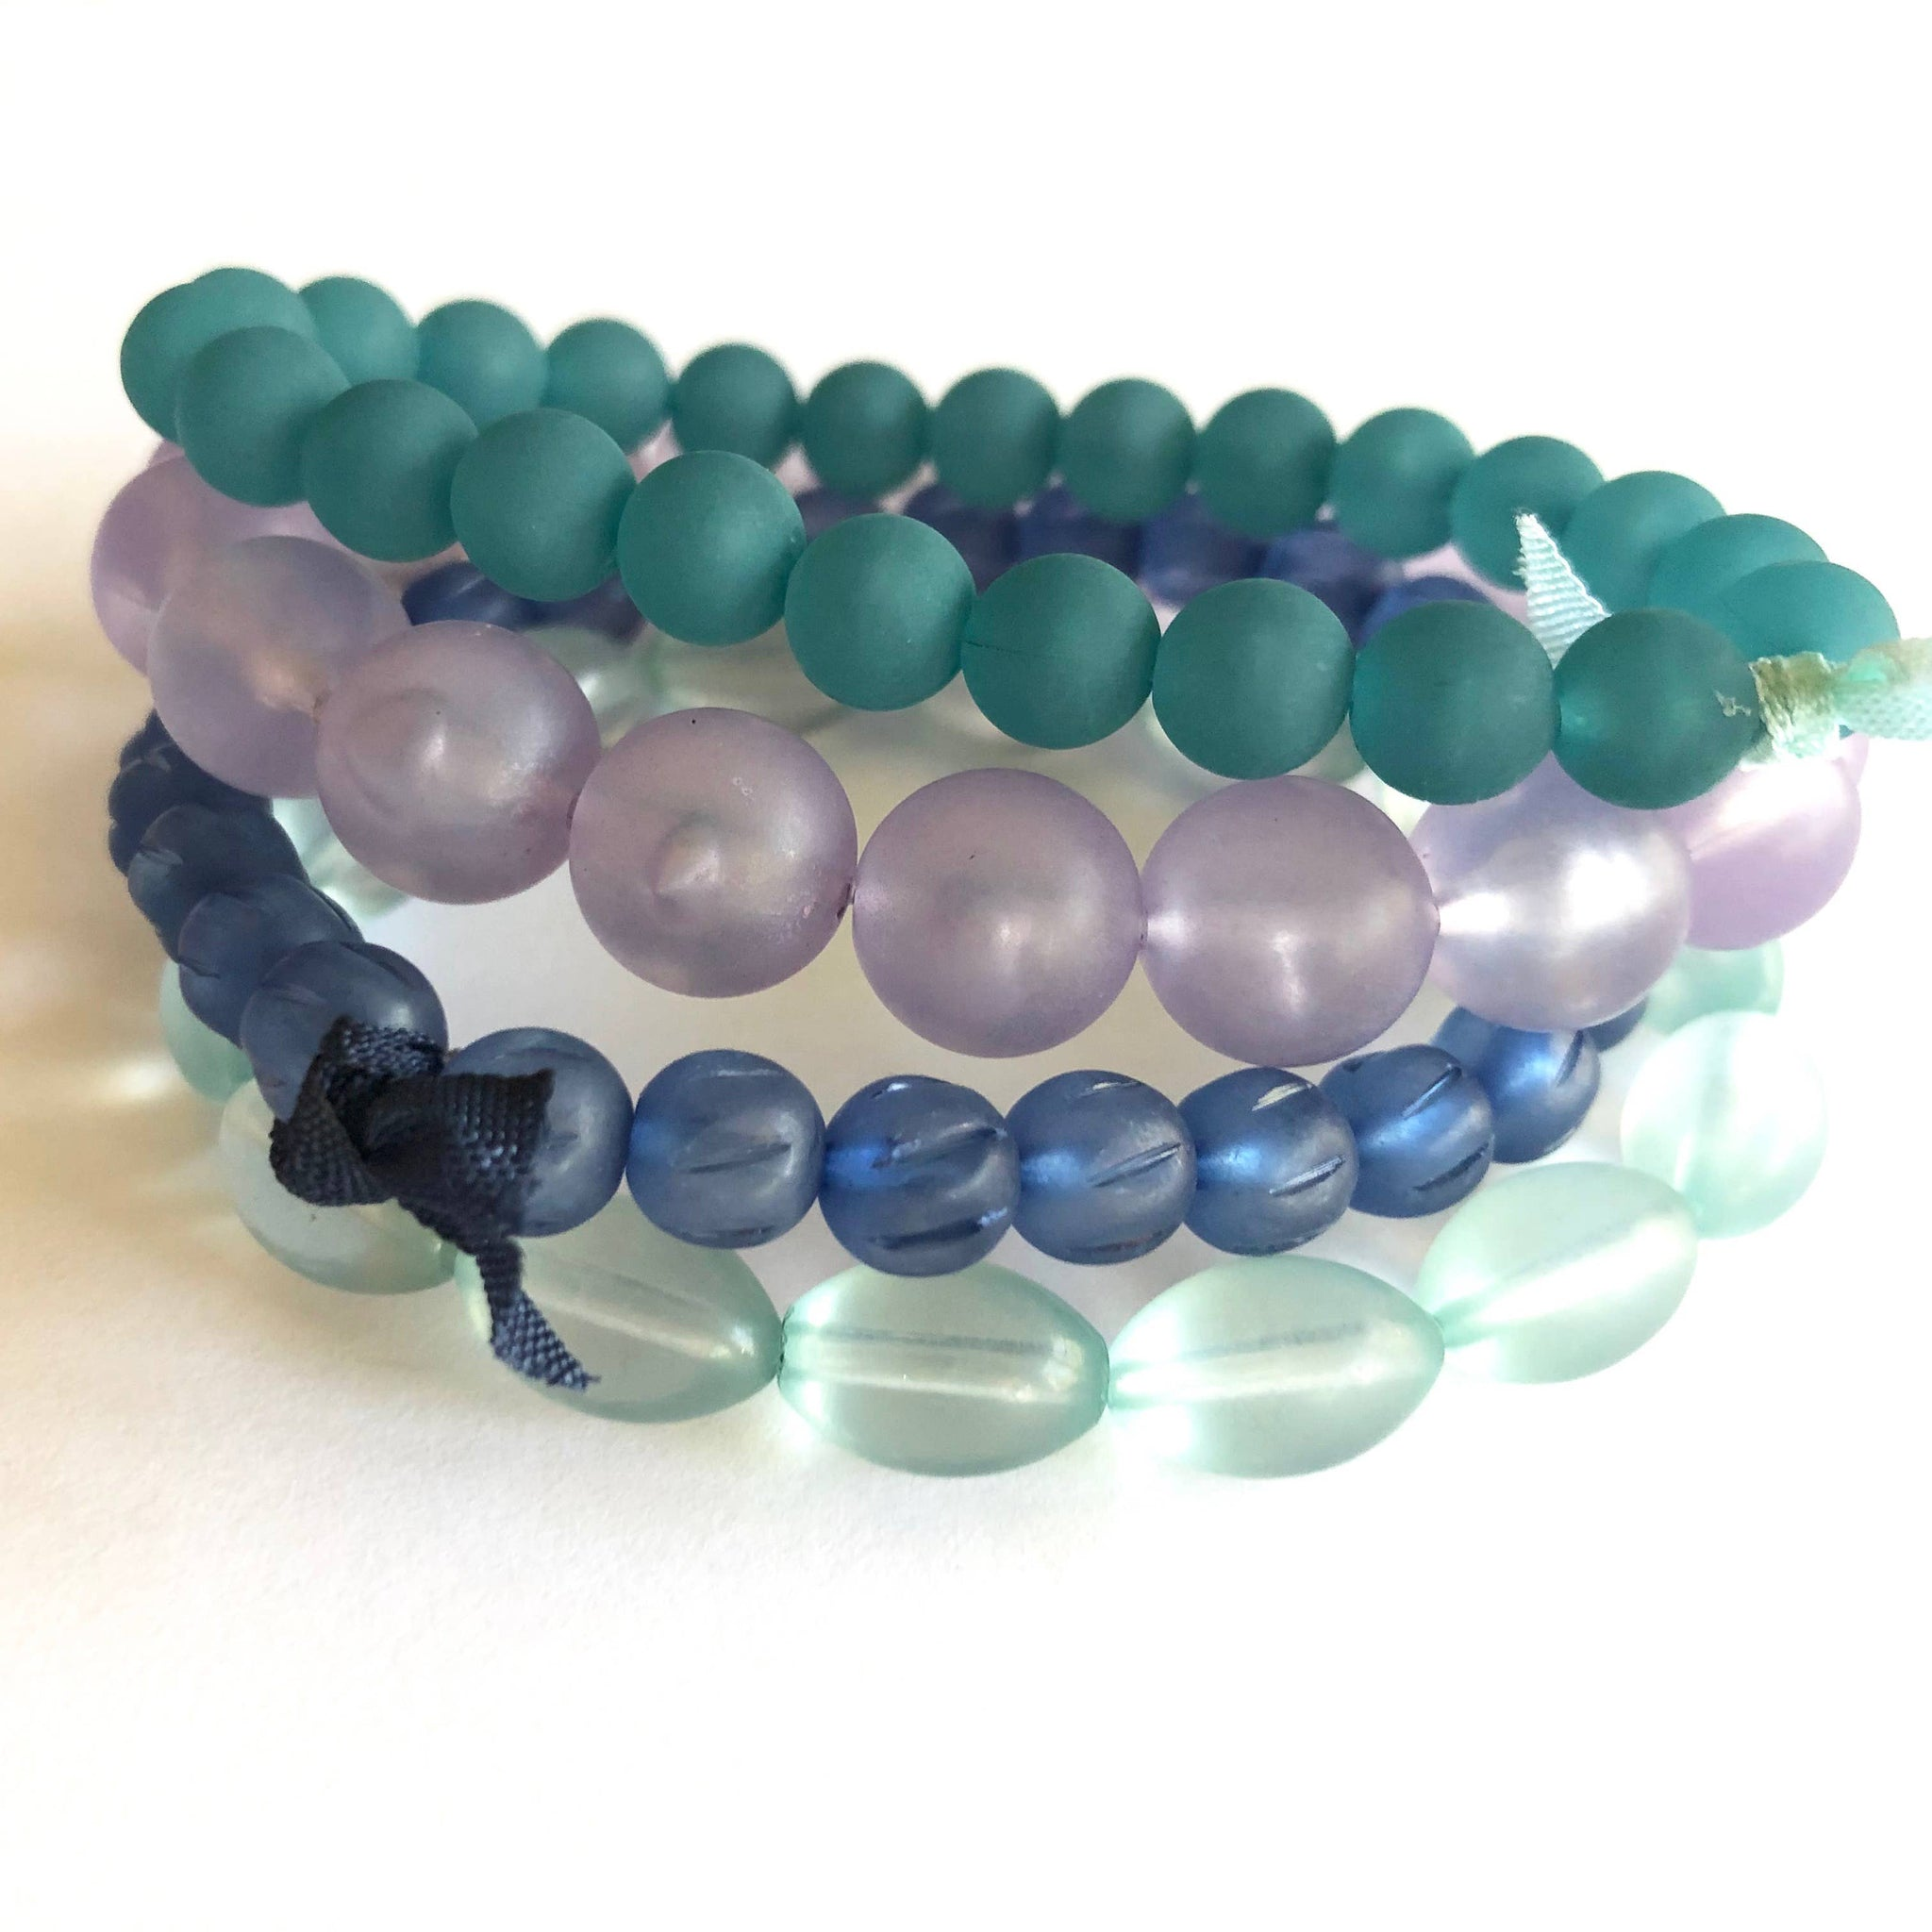 Leetie Lovendale Frosted Watery Tones Stack and Stretch Bracelet Set